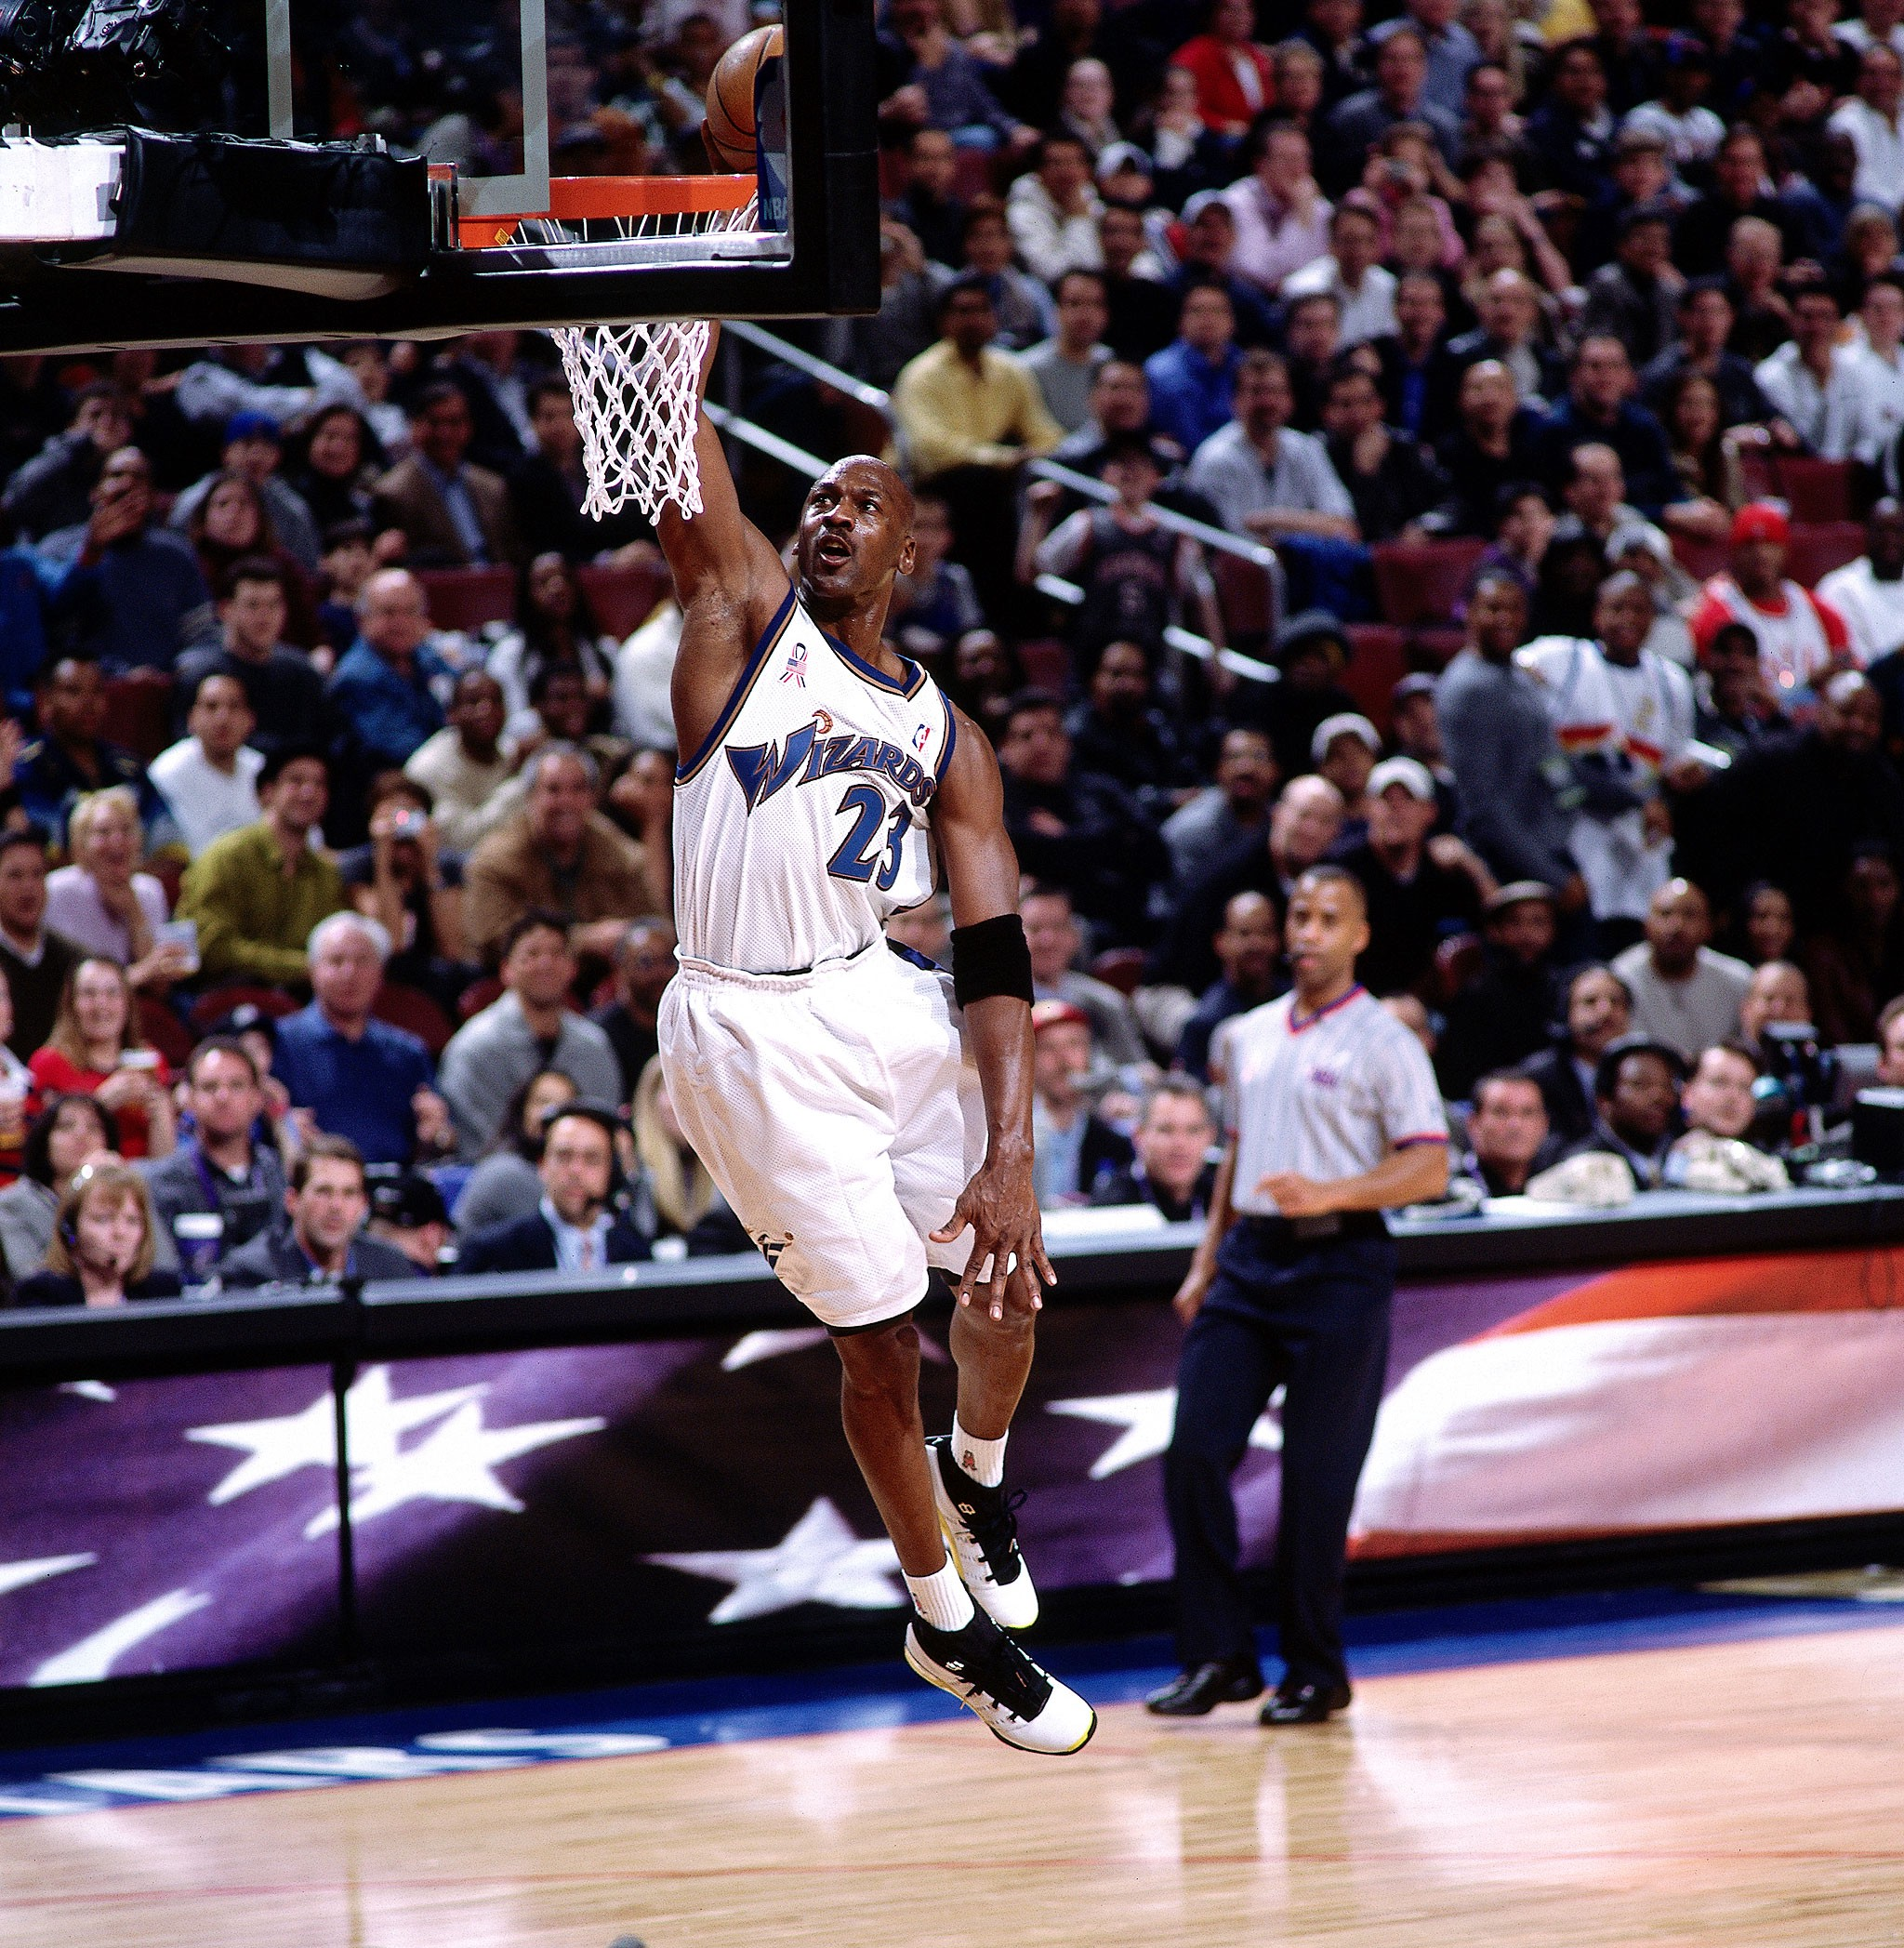 a tiempo Fuerza Polinizar  Michael Jordan's Wizards Years are Underrated | by Christopher Pierznik |  The Passion of Christopher Pierznik | Medium